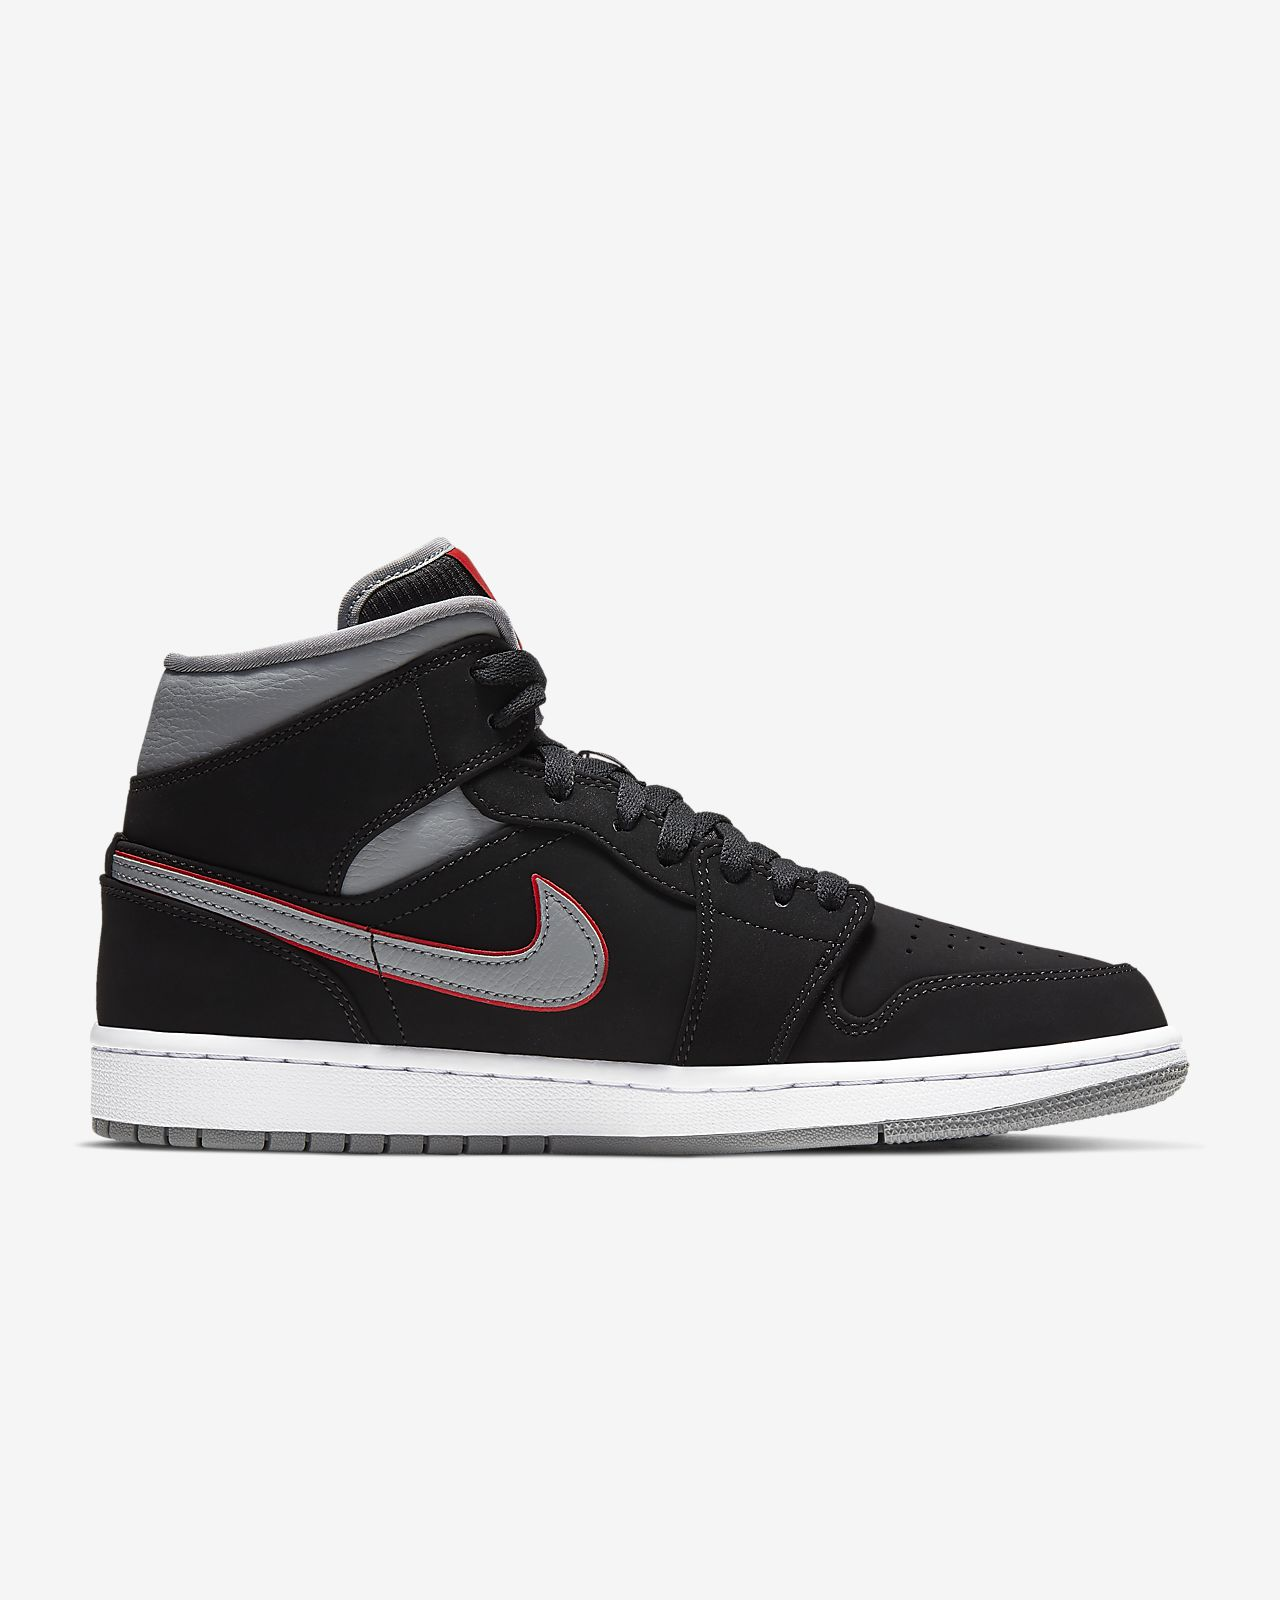 pick up 3a1f9 347b1 ... Air Jordan 1 Mid Men s Shoe